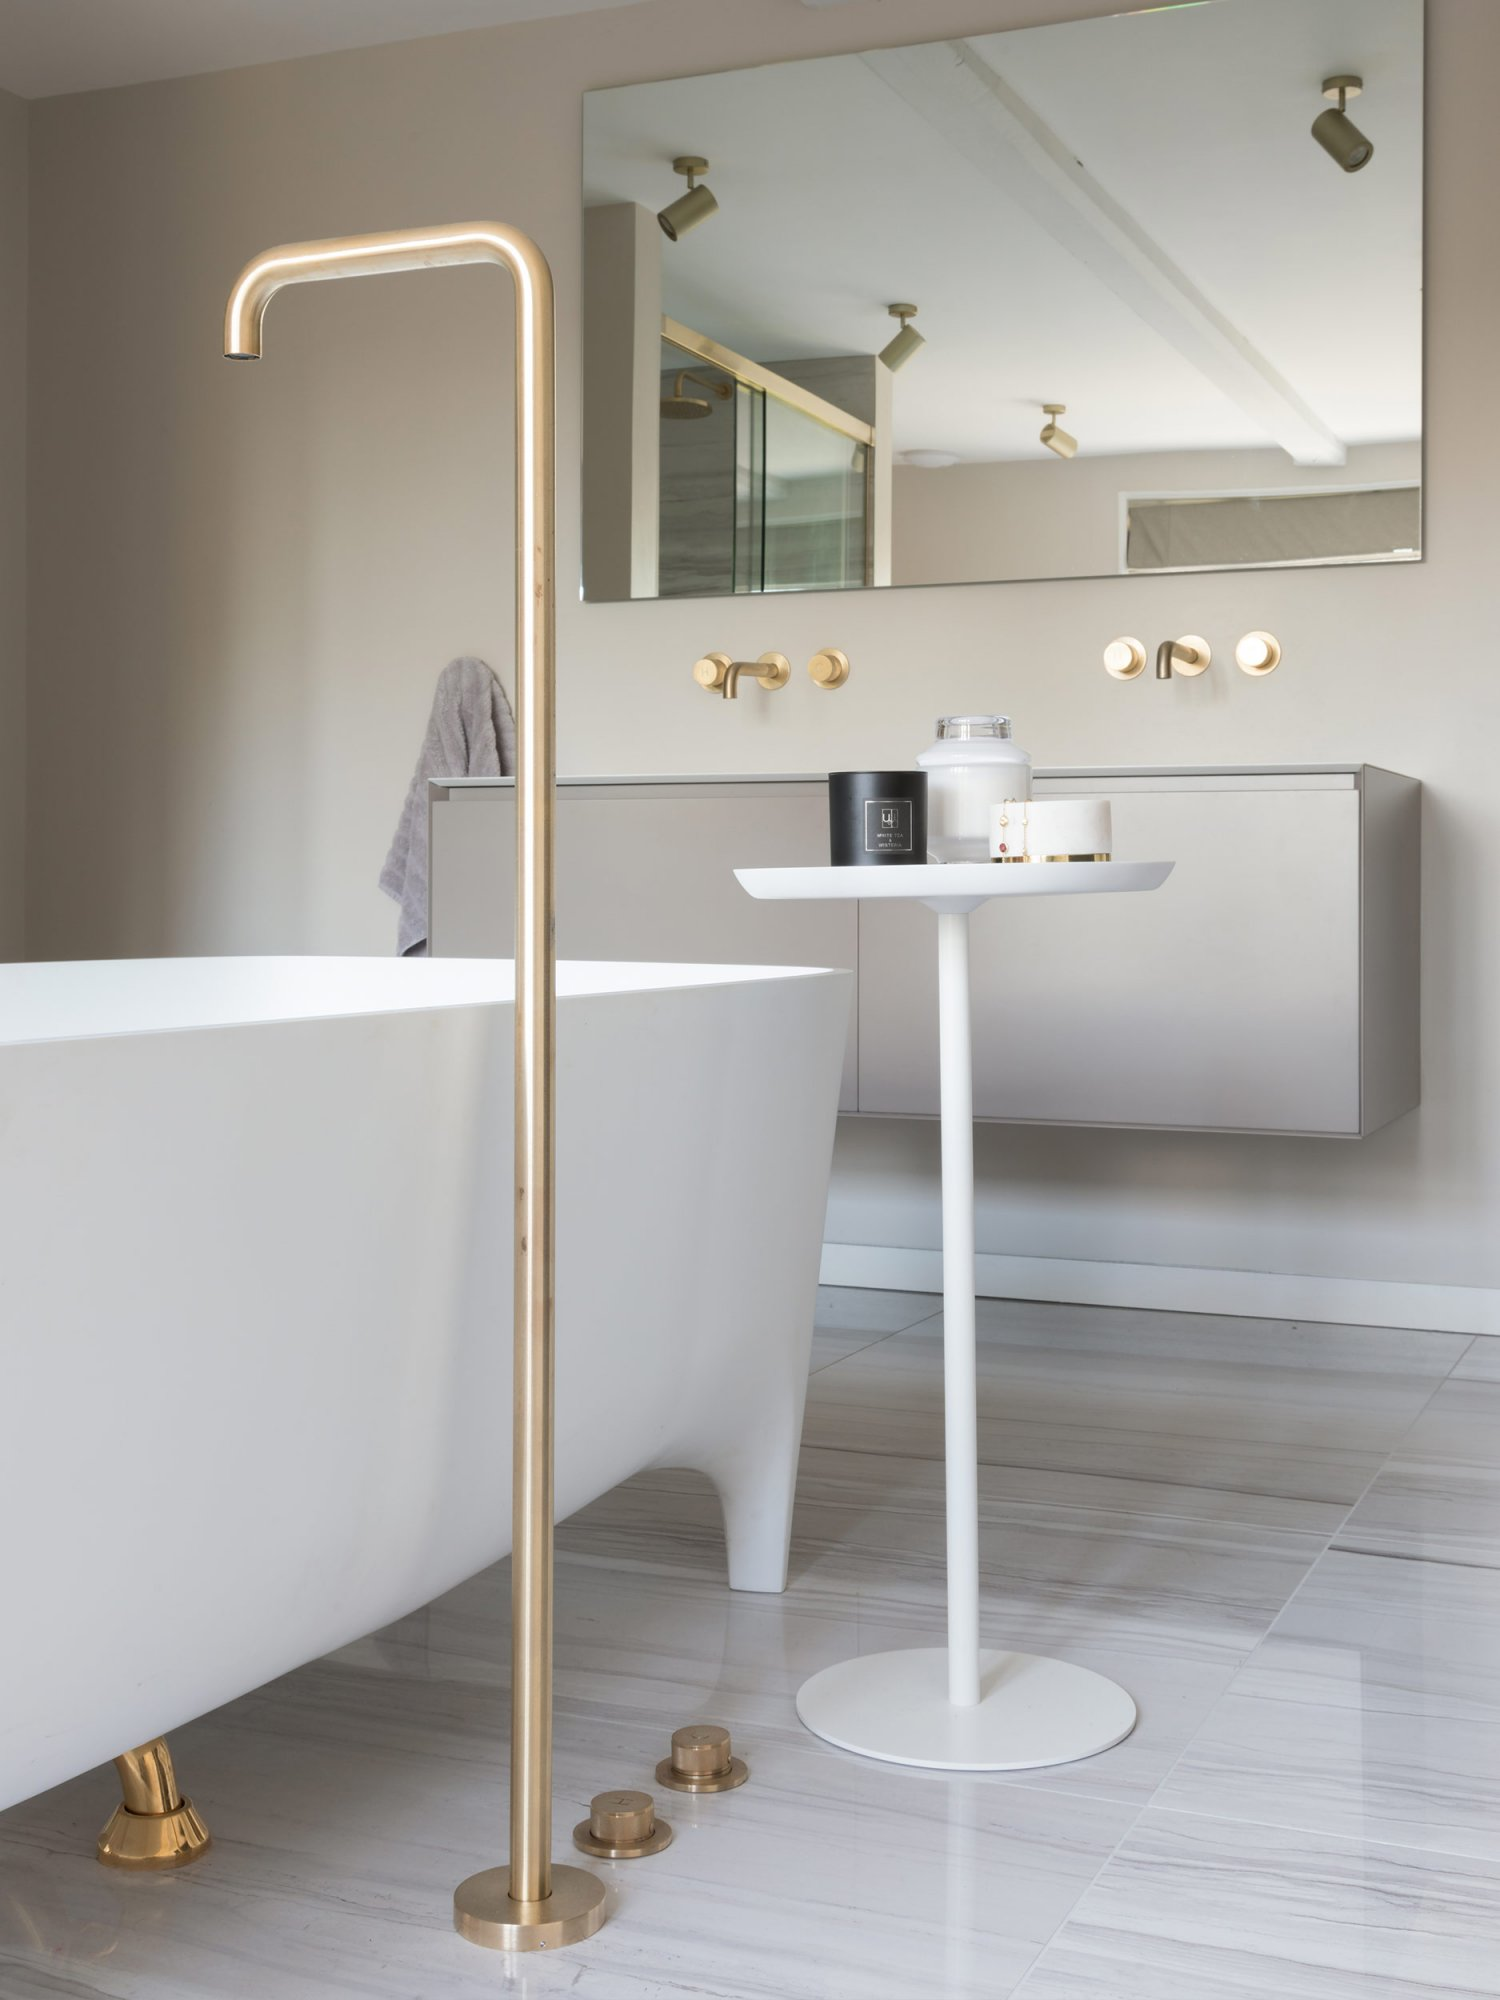 west one bathrooms case studies the master suite 5a